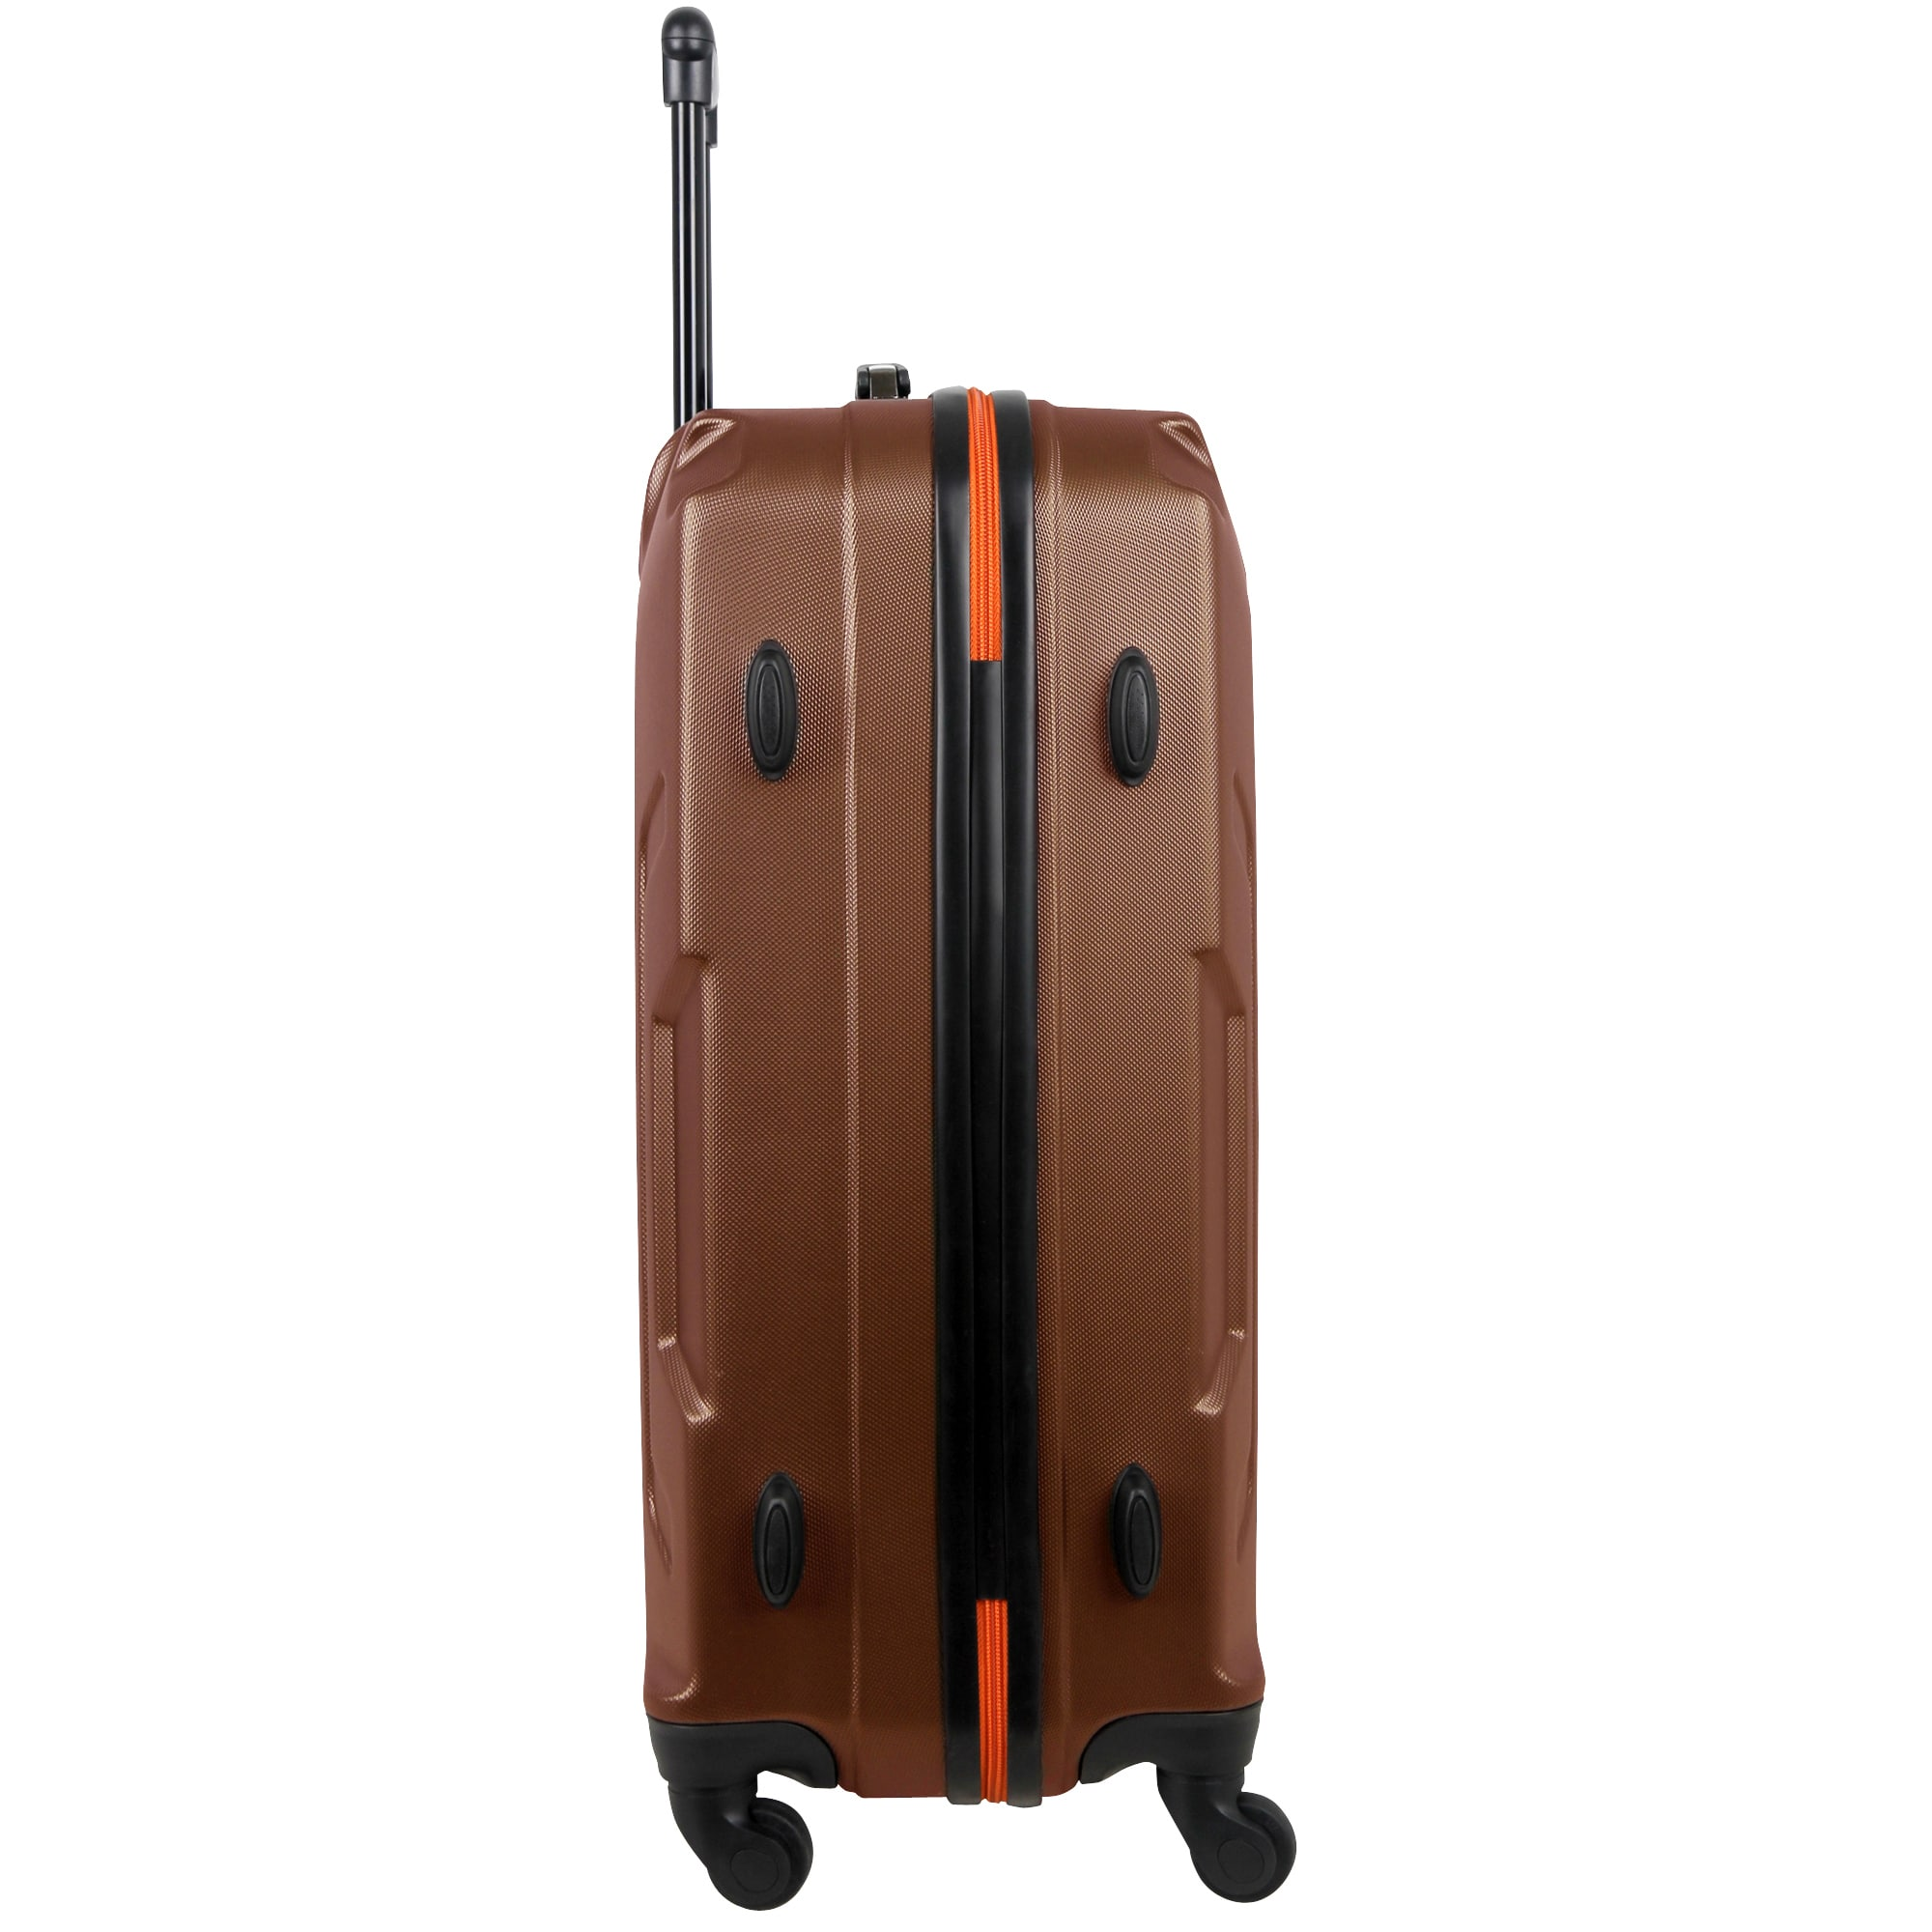 d13a719a44 Shop Timberland Boscawen 21-inch Carry On Hardside Spinner Suitcase - Free  Shipping Today - Overstock - 19456394